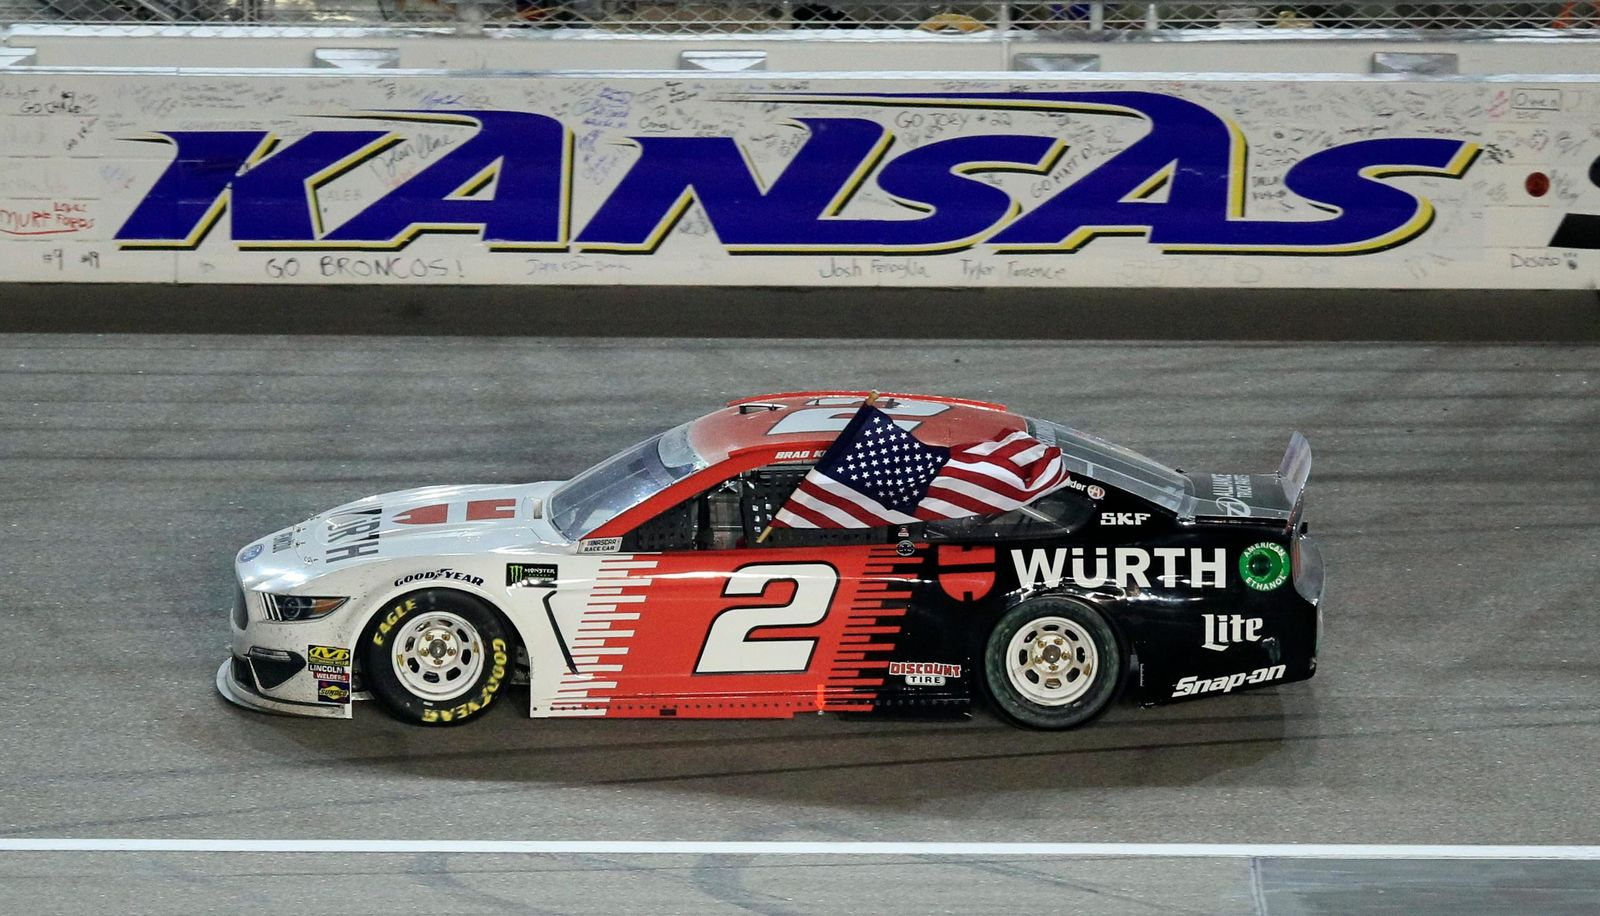 Brad Keselowski (2) celebrates after winning the NASCAR Cup Series auto race at Kansas Speedway in Kansas City, Kan., Saturday, May 11, 2019. (AP Photo/Orlin Wagner)